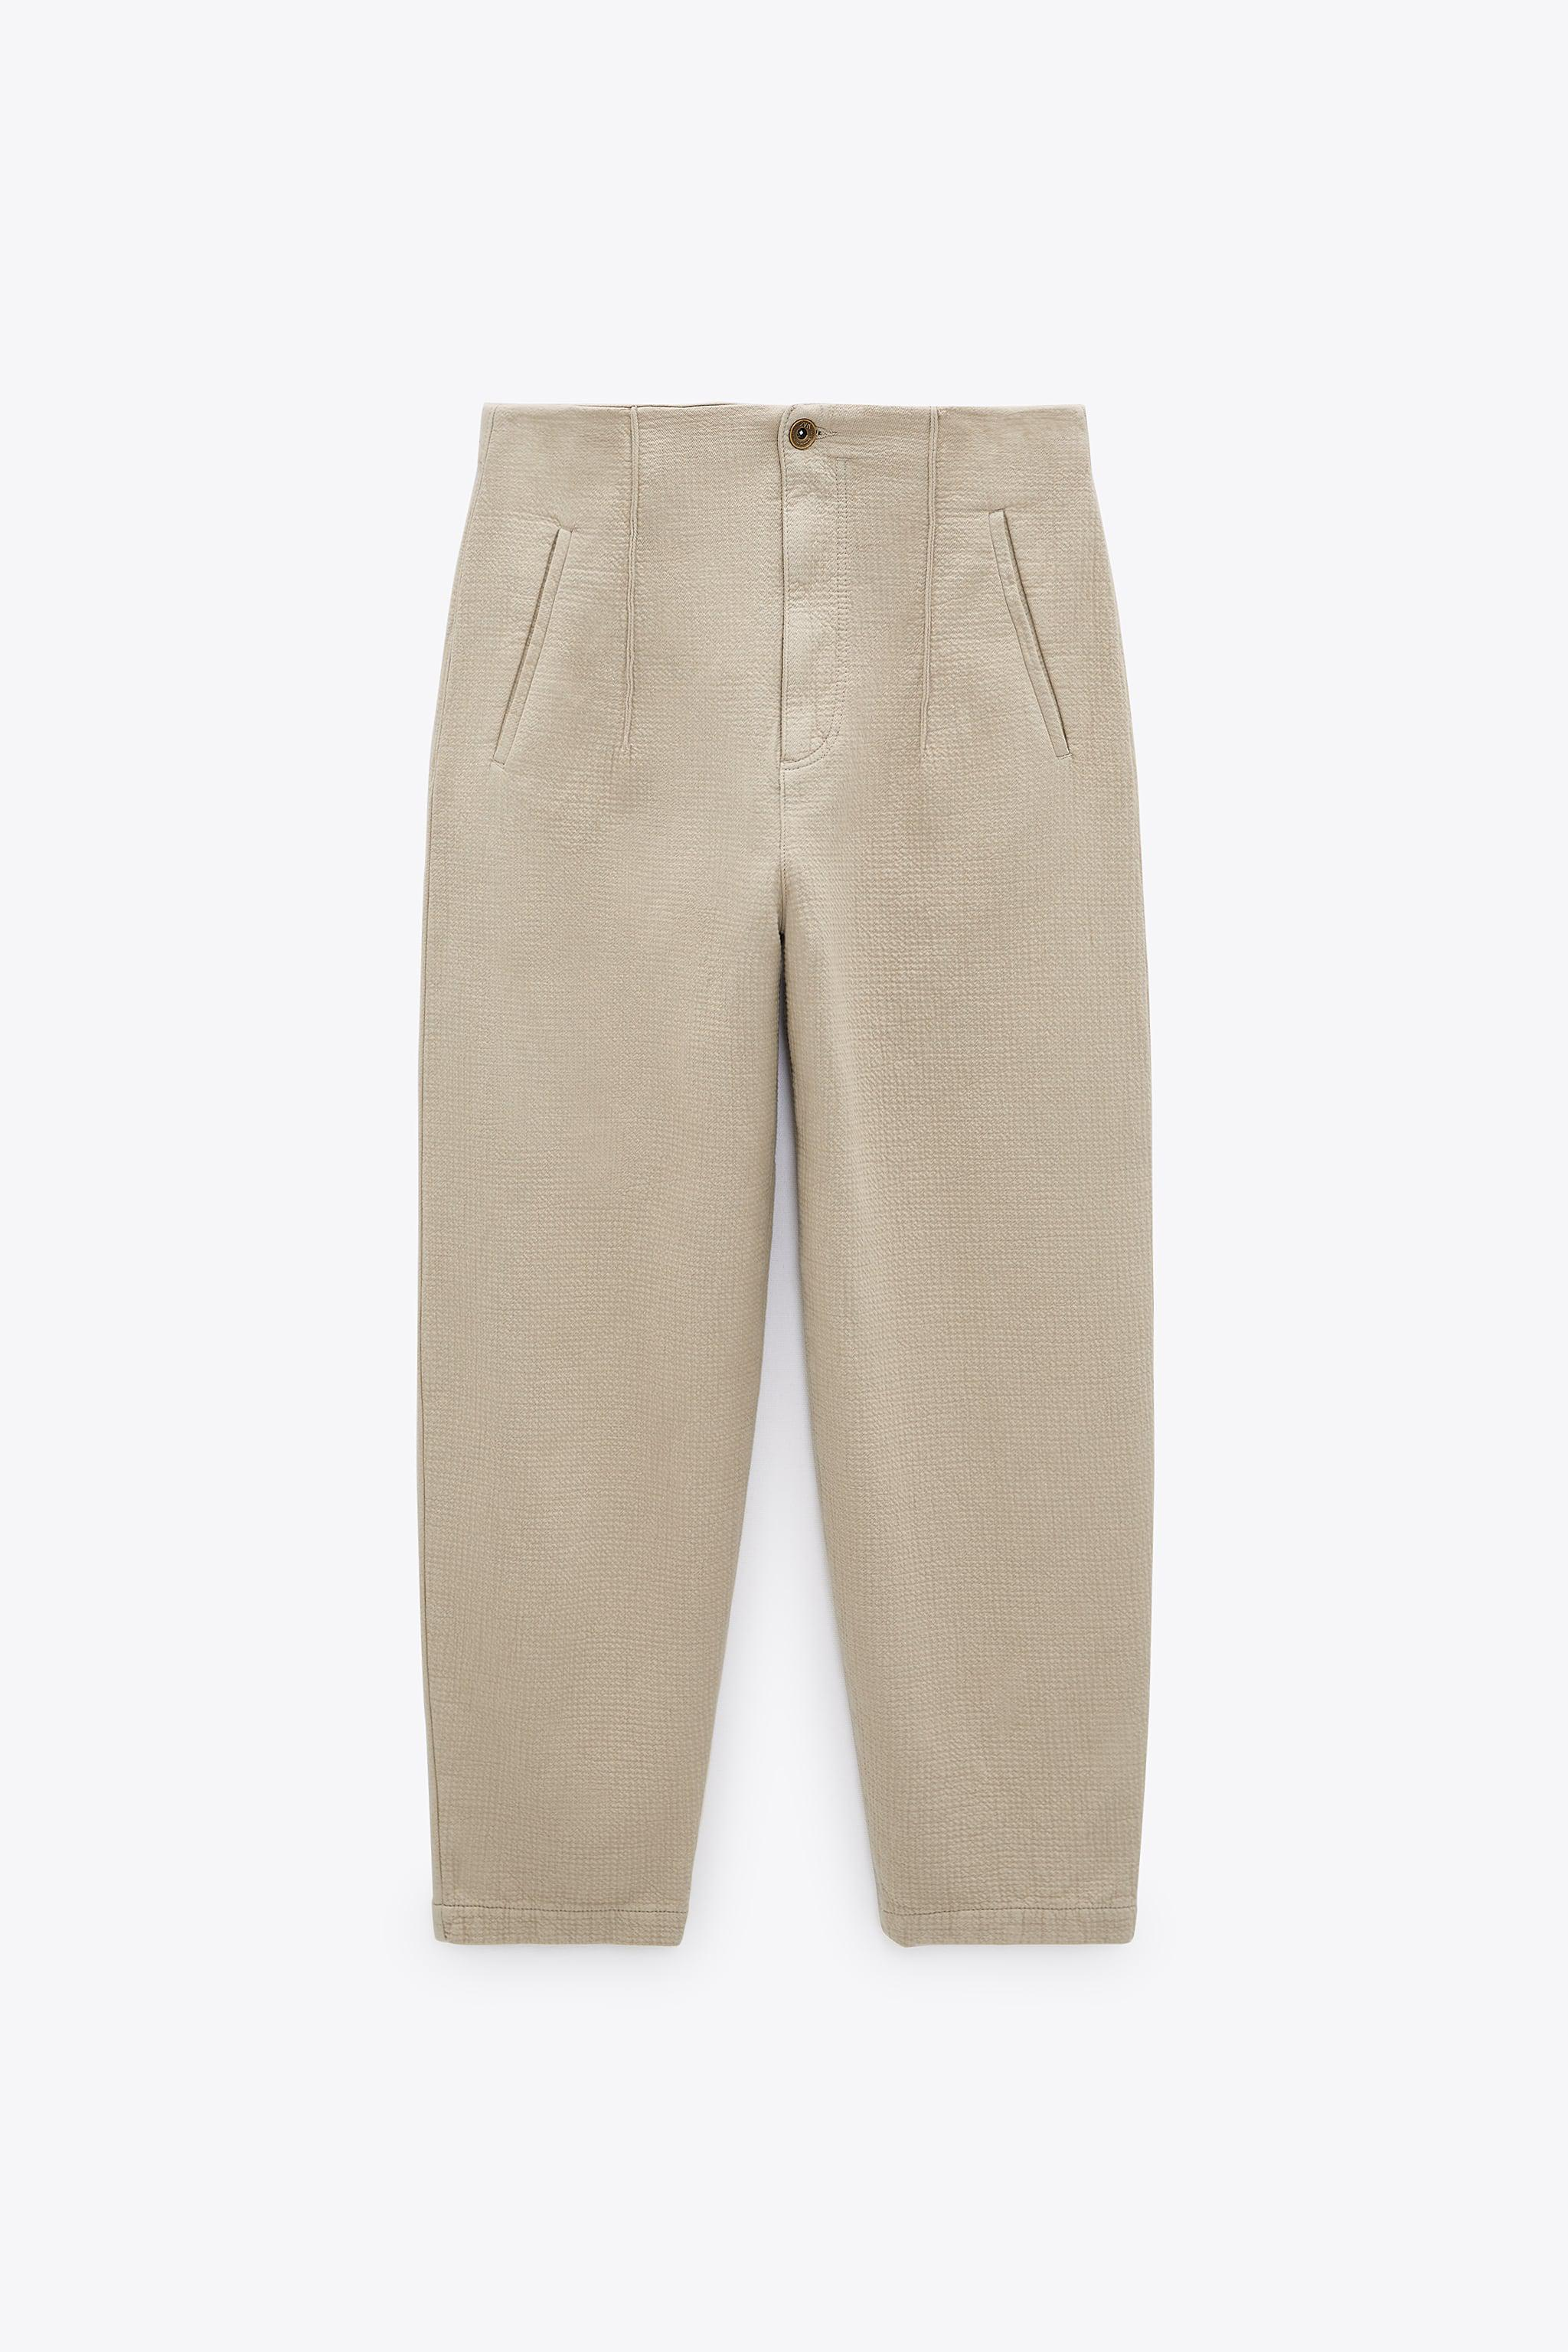 SLOUCHY SOFT PANTS 5